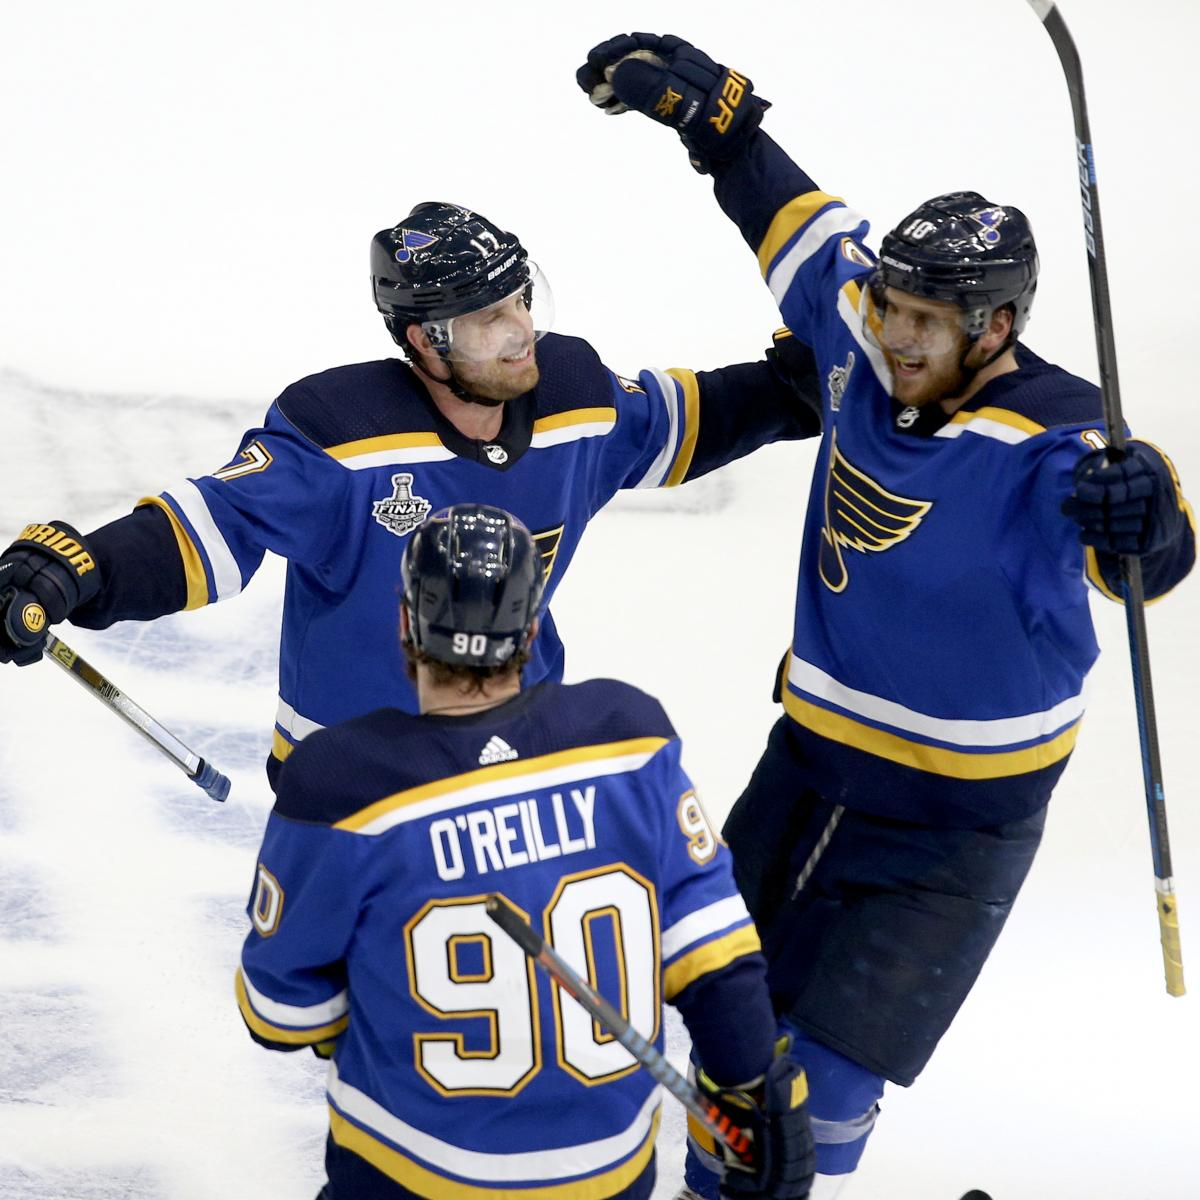 Bruins Vs. Blues: Game 4 Stats And NHL Final 2019 Game 5